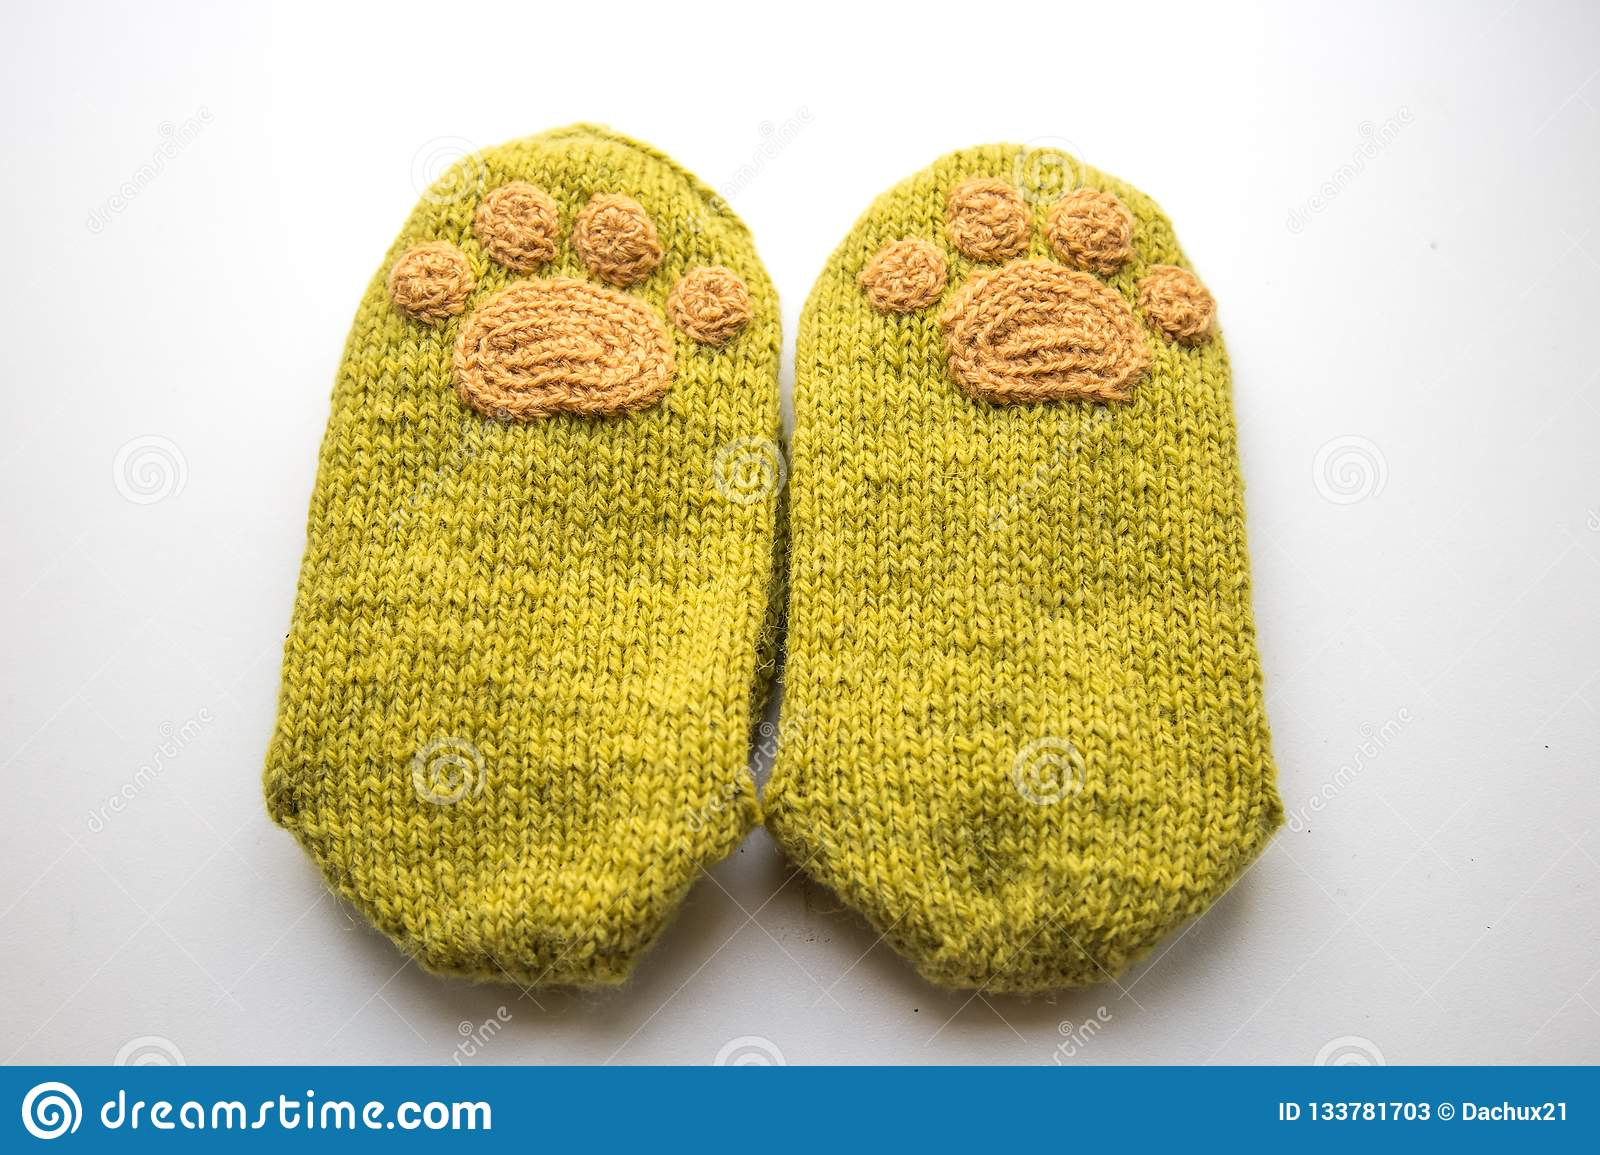 9537e1d7cc363 A Pair Of Beautiful, Warm Hand Knitted Wool Socks From A Natural ...